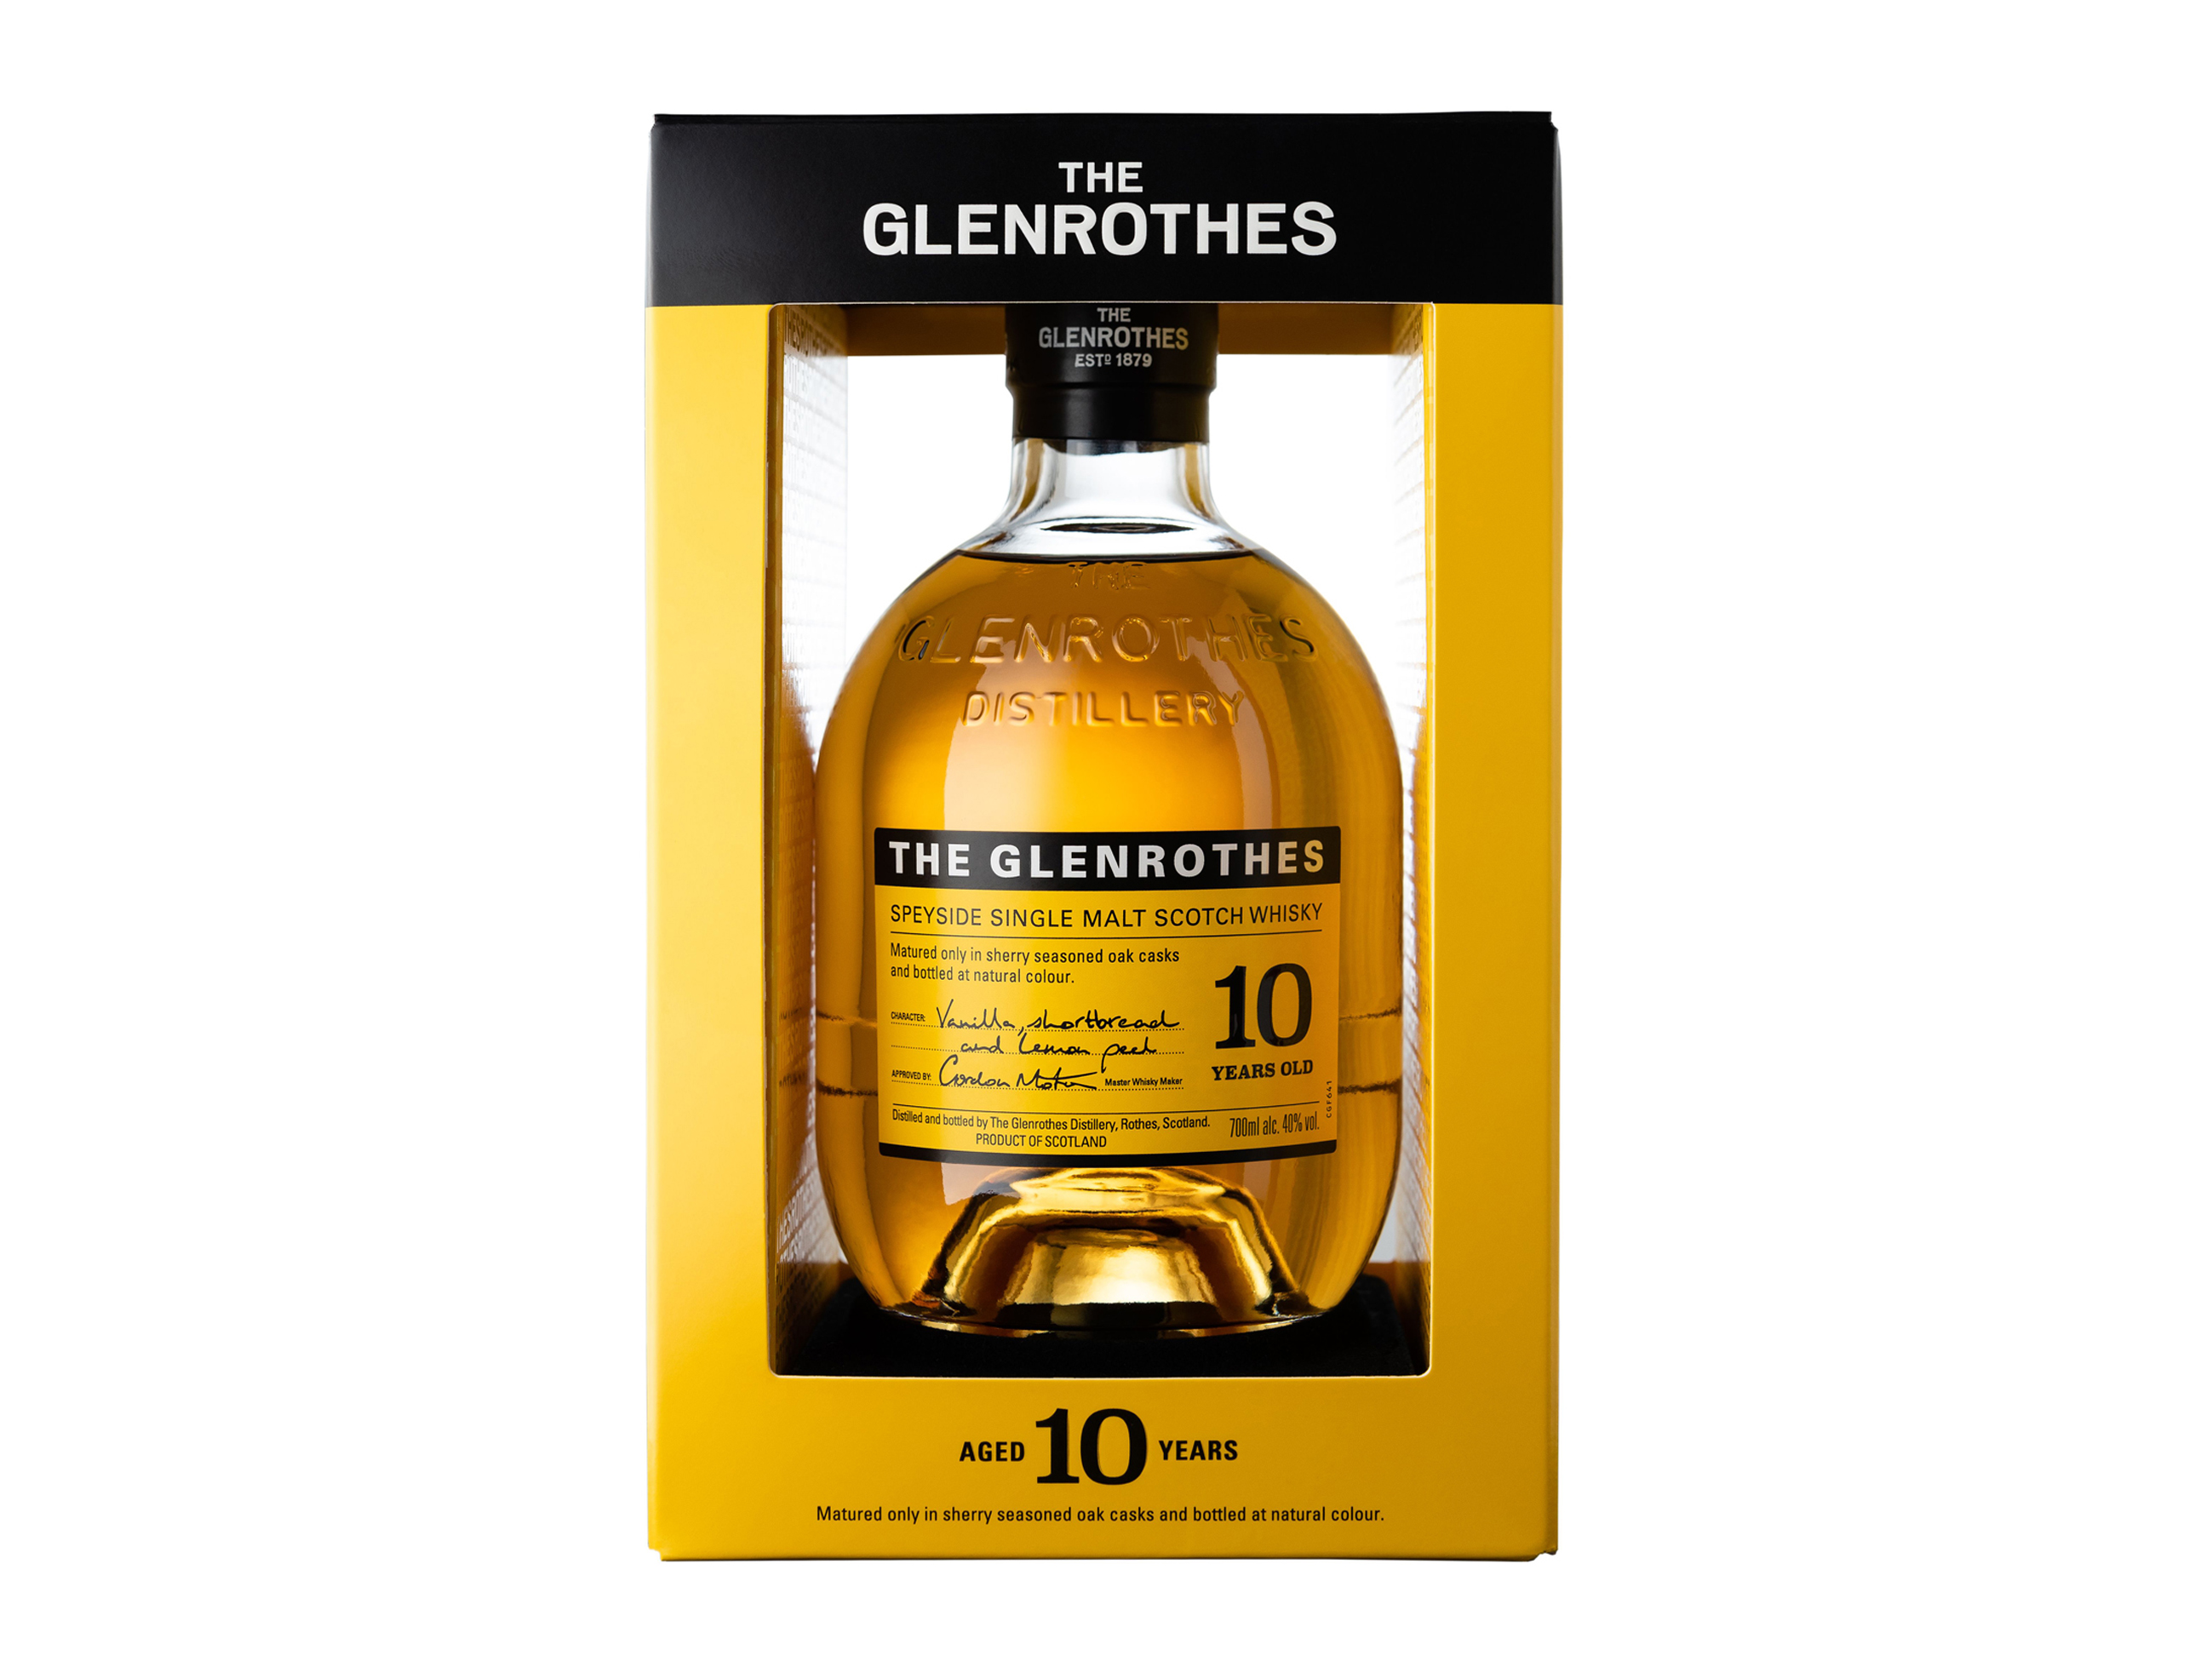 6a032940a41 7 superb Scotch whiskies to enjoy this January - Lifestyle from ...